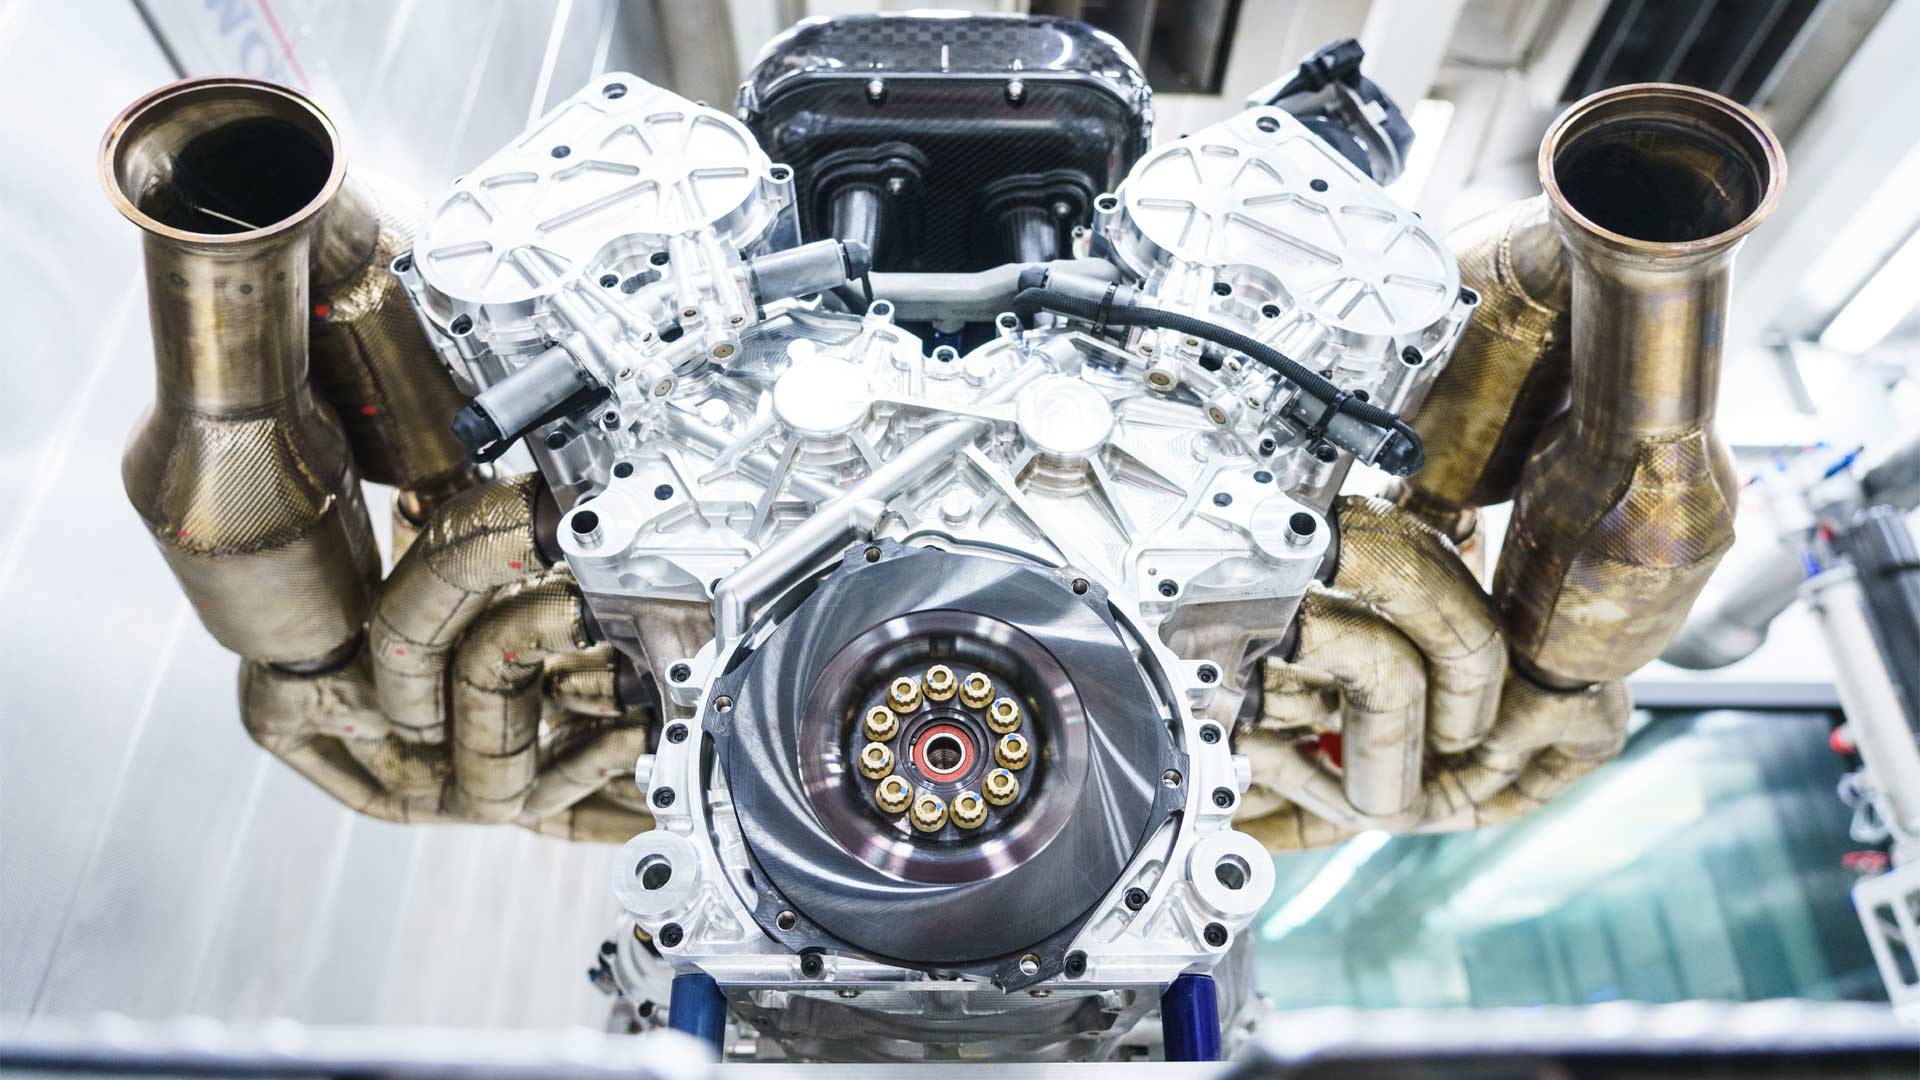 Aston-Martin-Valkyrie-V12-Engine-Cosworth